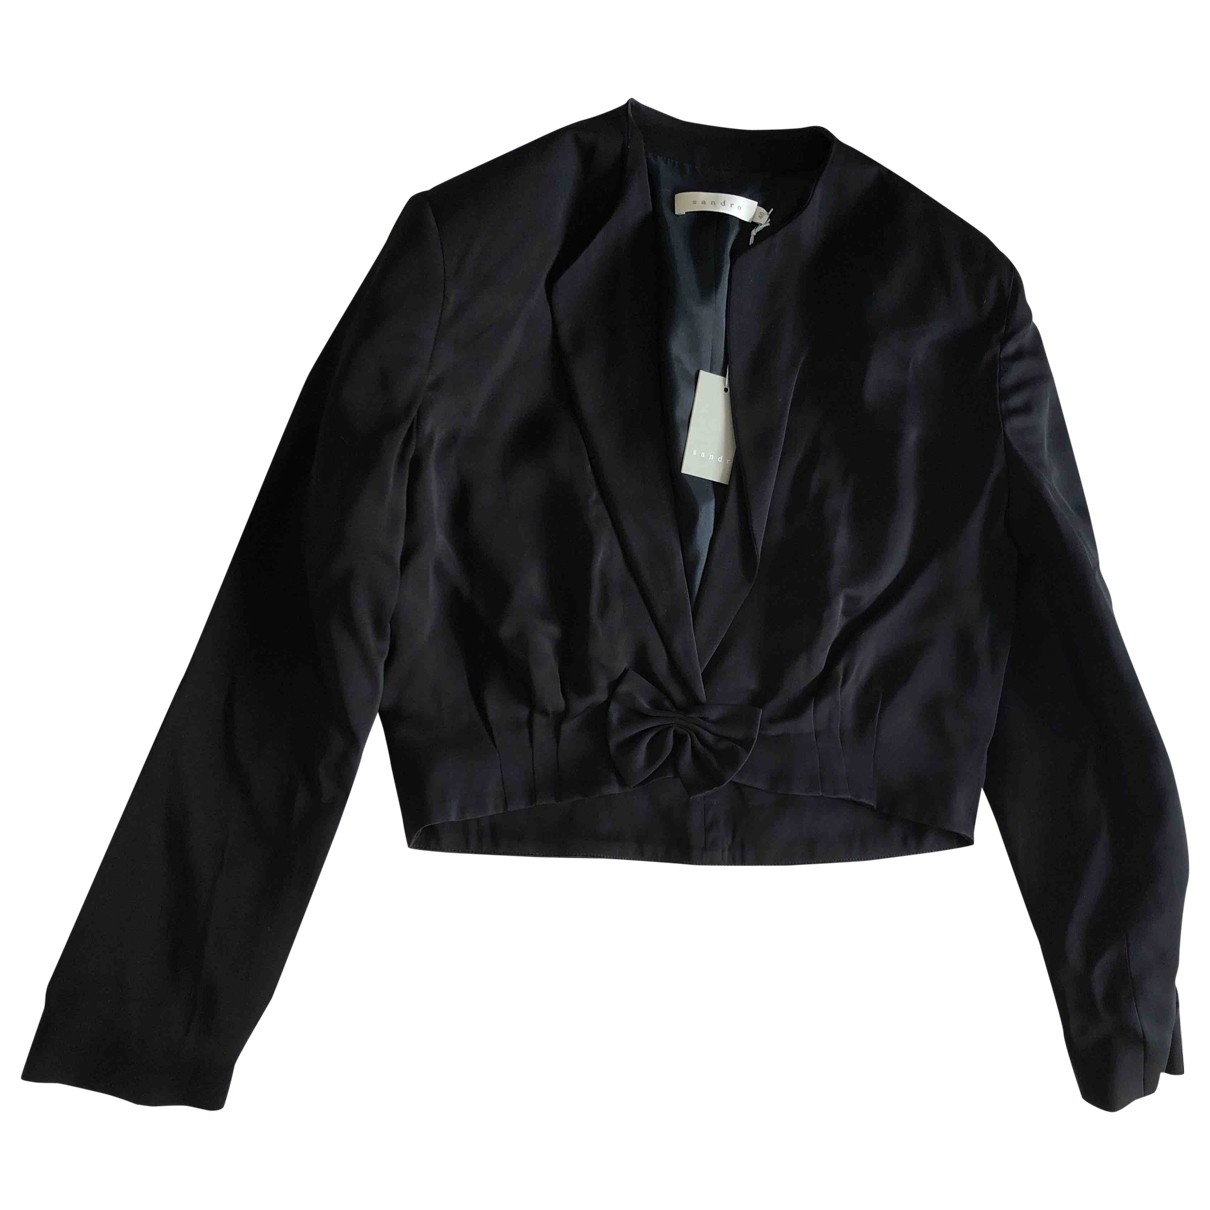 Maje \N Black Cotton jacket for Women 40 FR